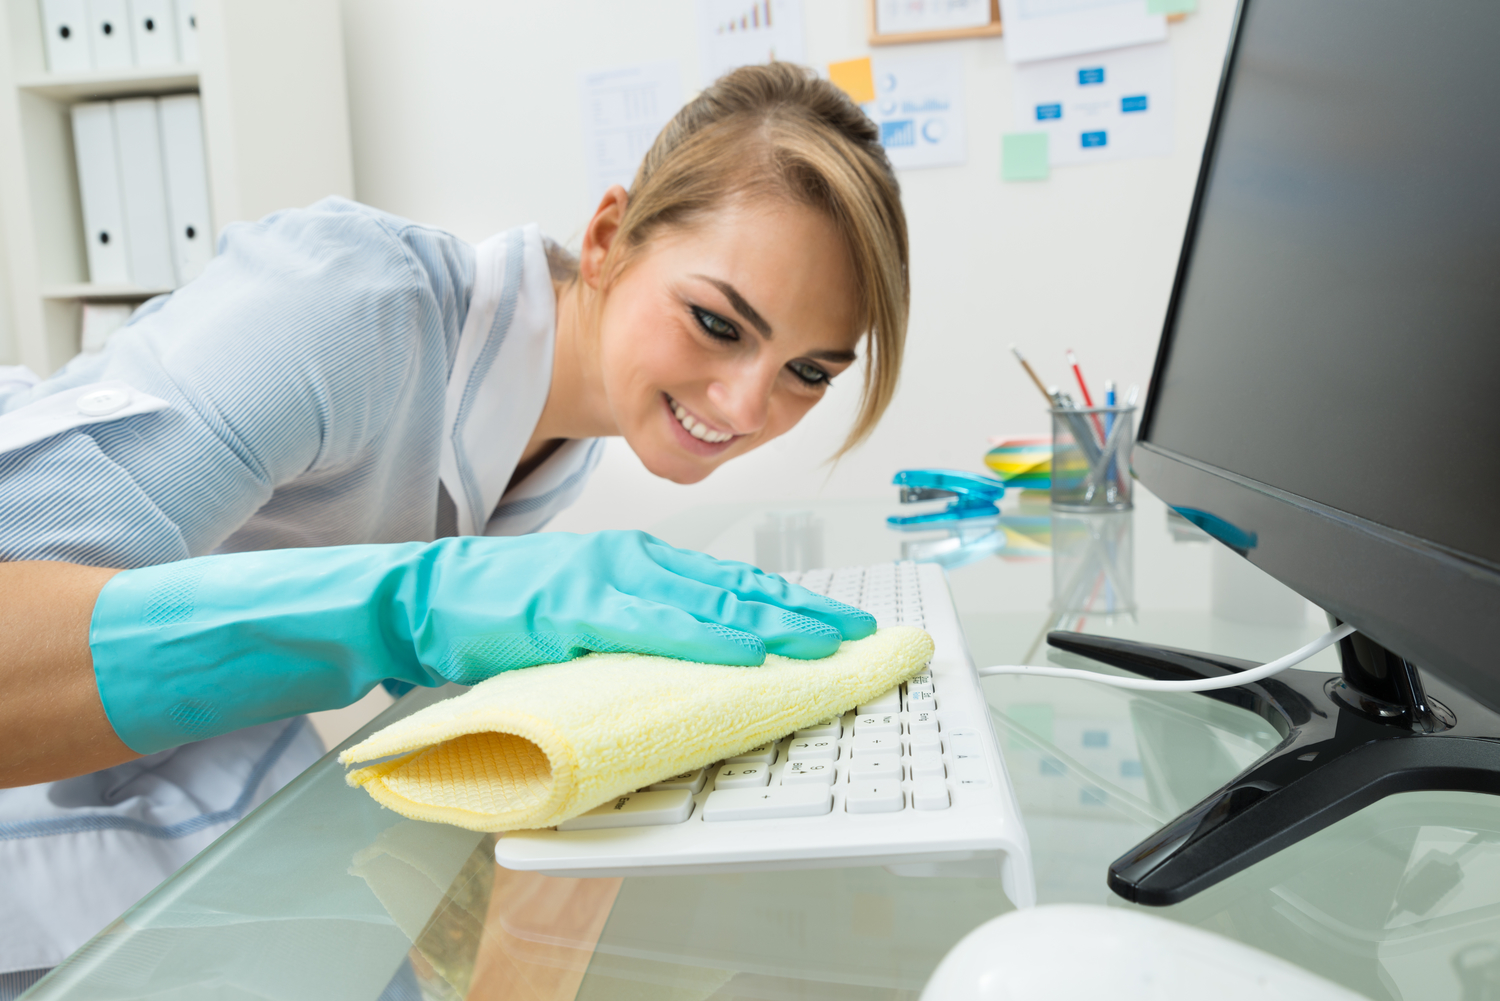 Maid Cleaning Keyboard At Desk